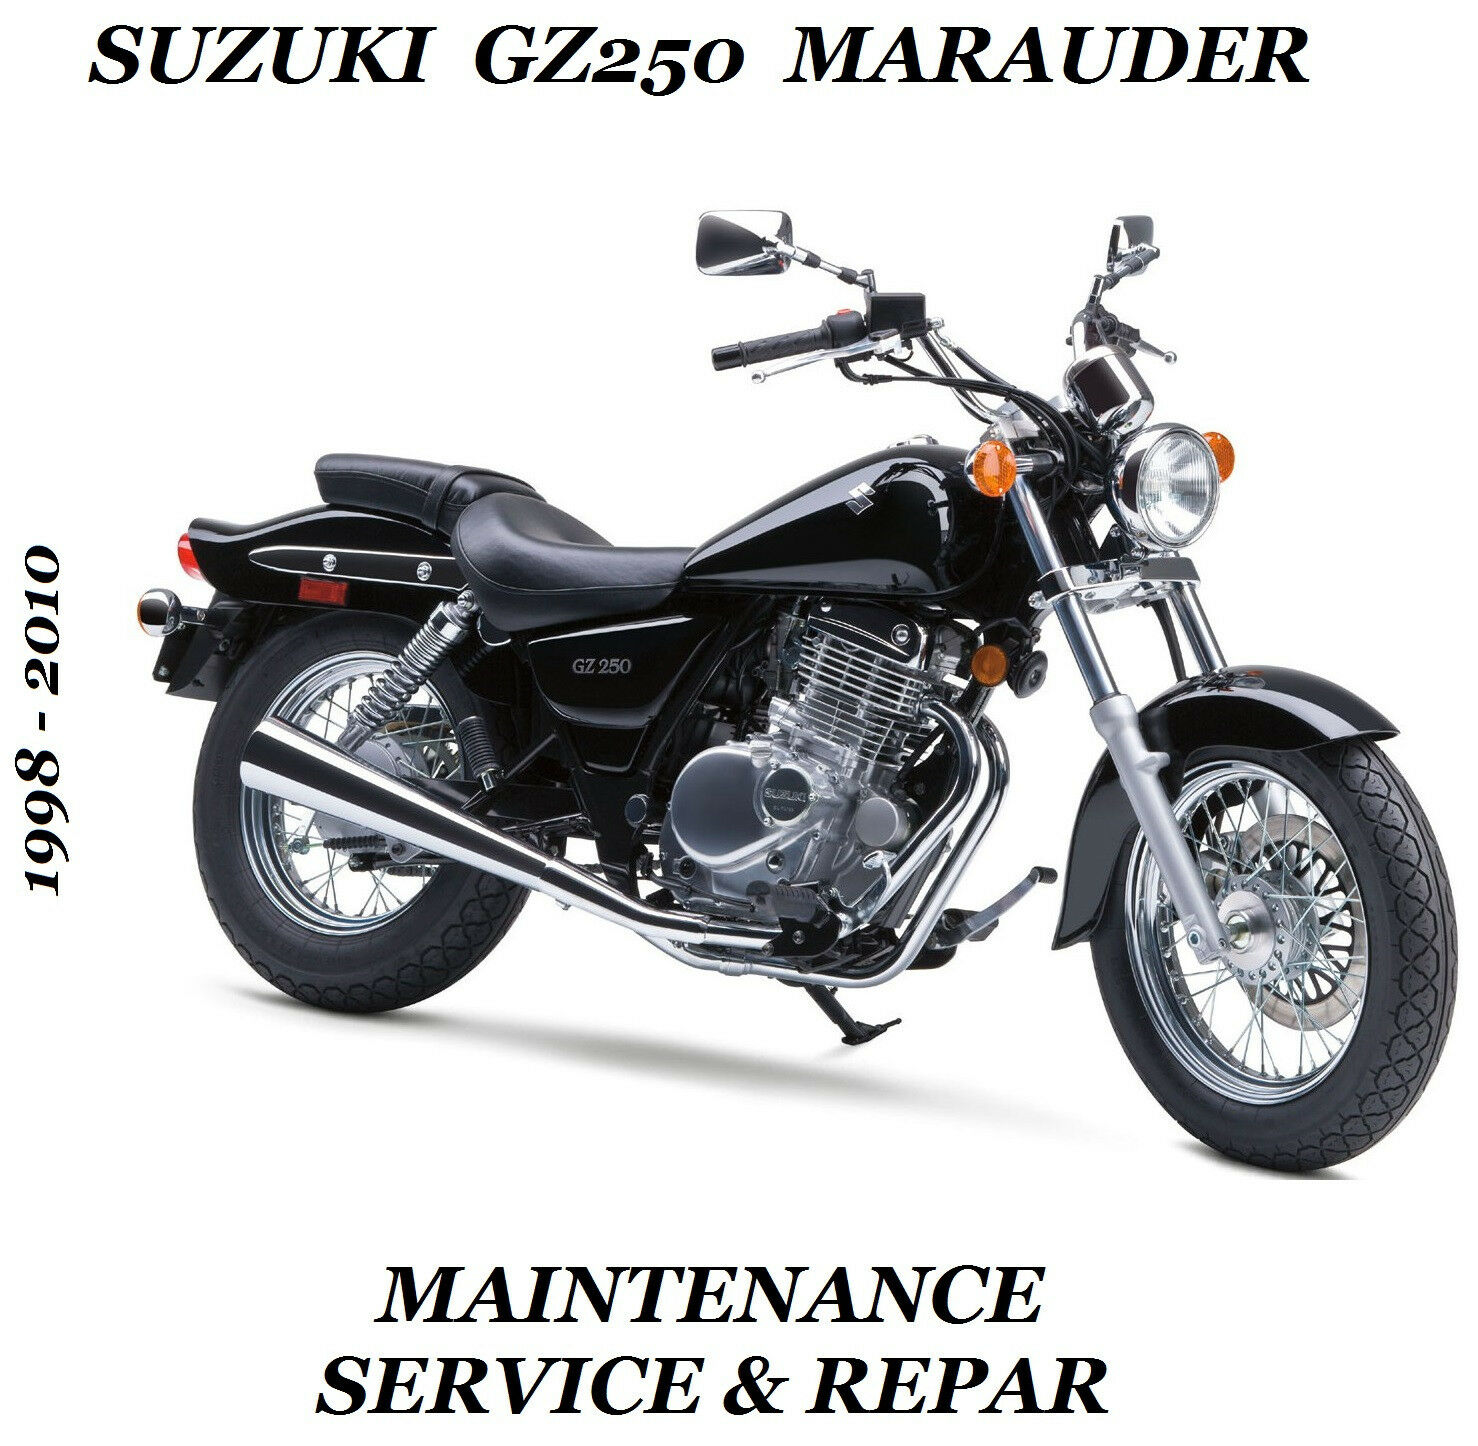 suzuki gz250 marauder maintenance tune up service repair manual gz rh picclick com 1998 suzuki marauder 800 service manual 1998 suzuki marauder 800 service manual